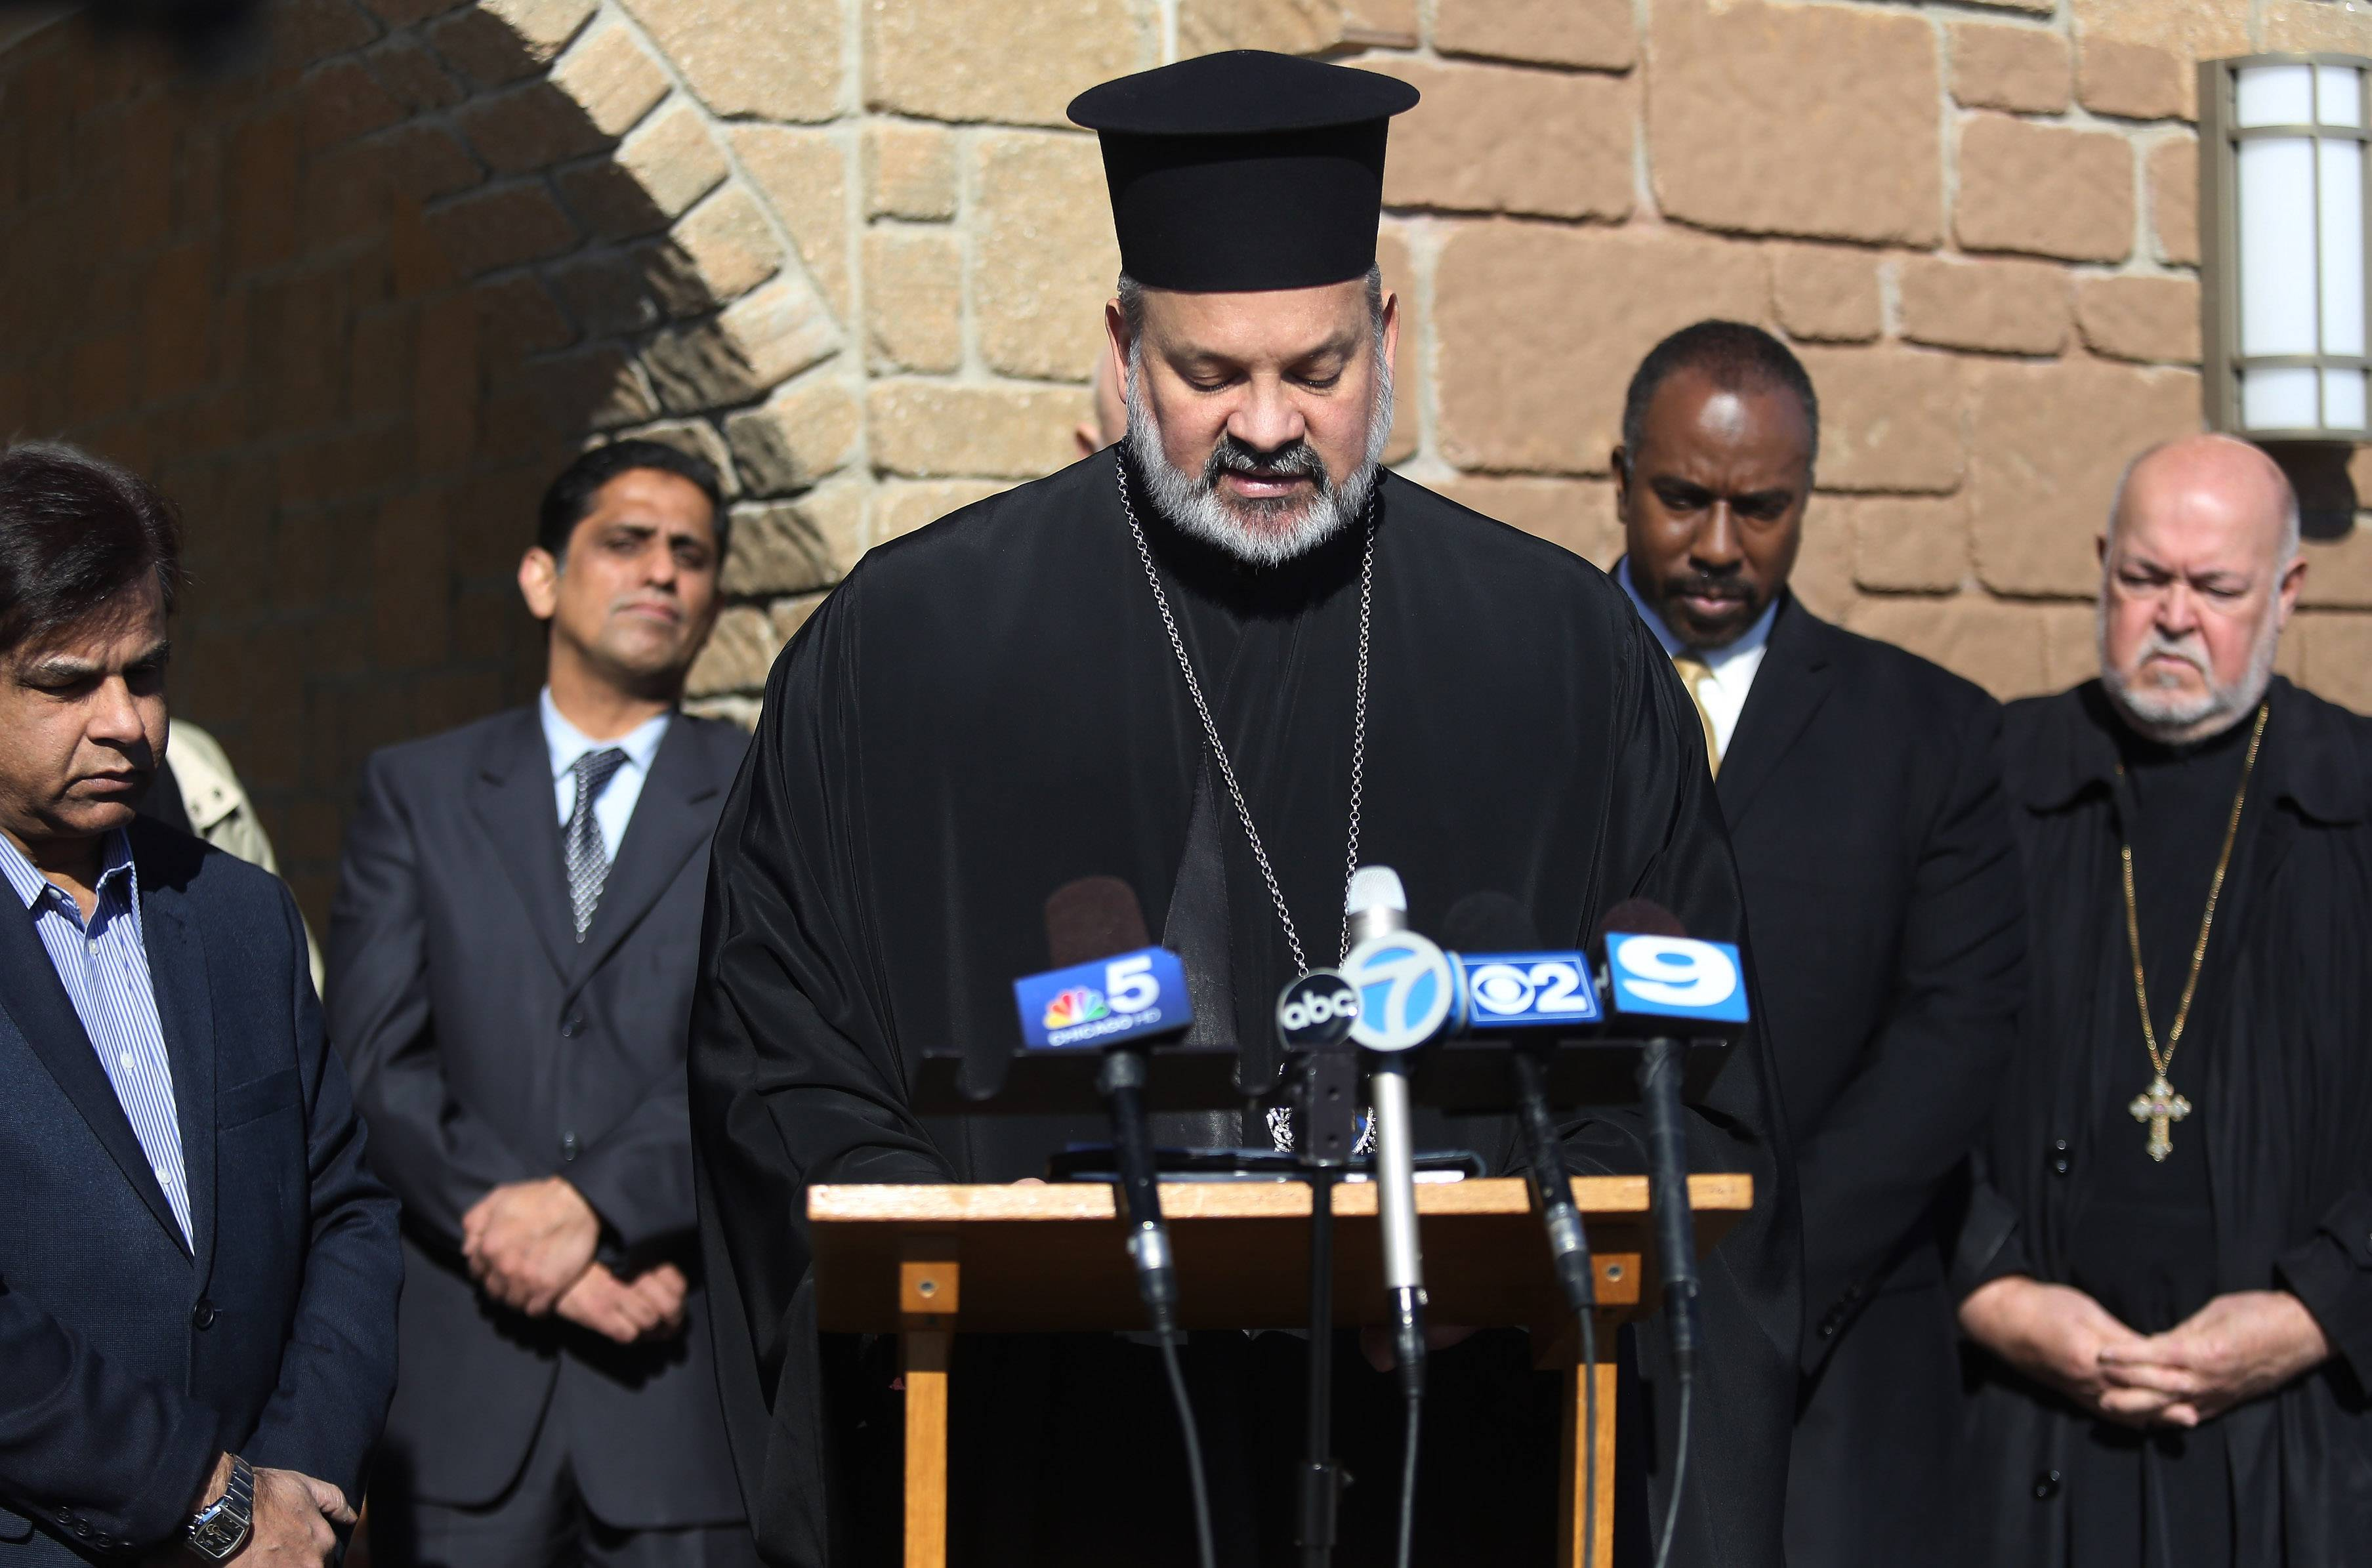 Bishop Demetrios of the Metropolis of Chicago says a prayer at St. Demetrios Greek Orthodox Church in Waukegan as he is joined by leaders of other faiths during a news conference Wednesday to discuss recent vandalism.